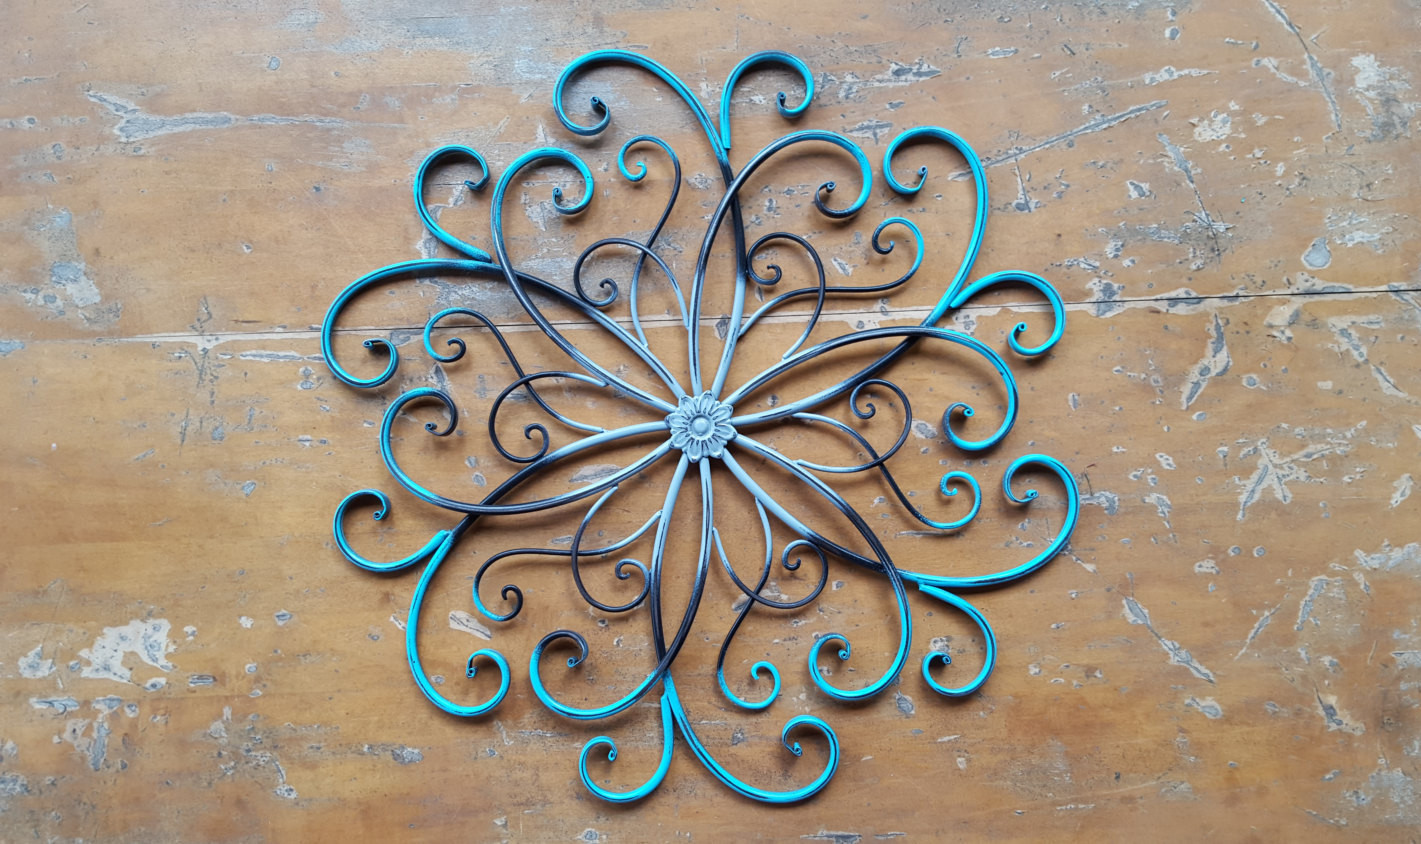 Best ideas about Large Metal Wall Art . Save or Pin Metal Wall Art Wrought Iron Wall Decor Now.